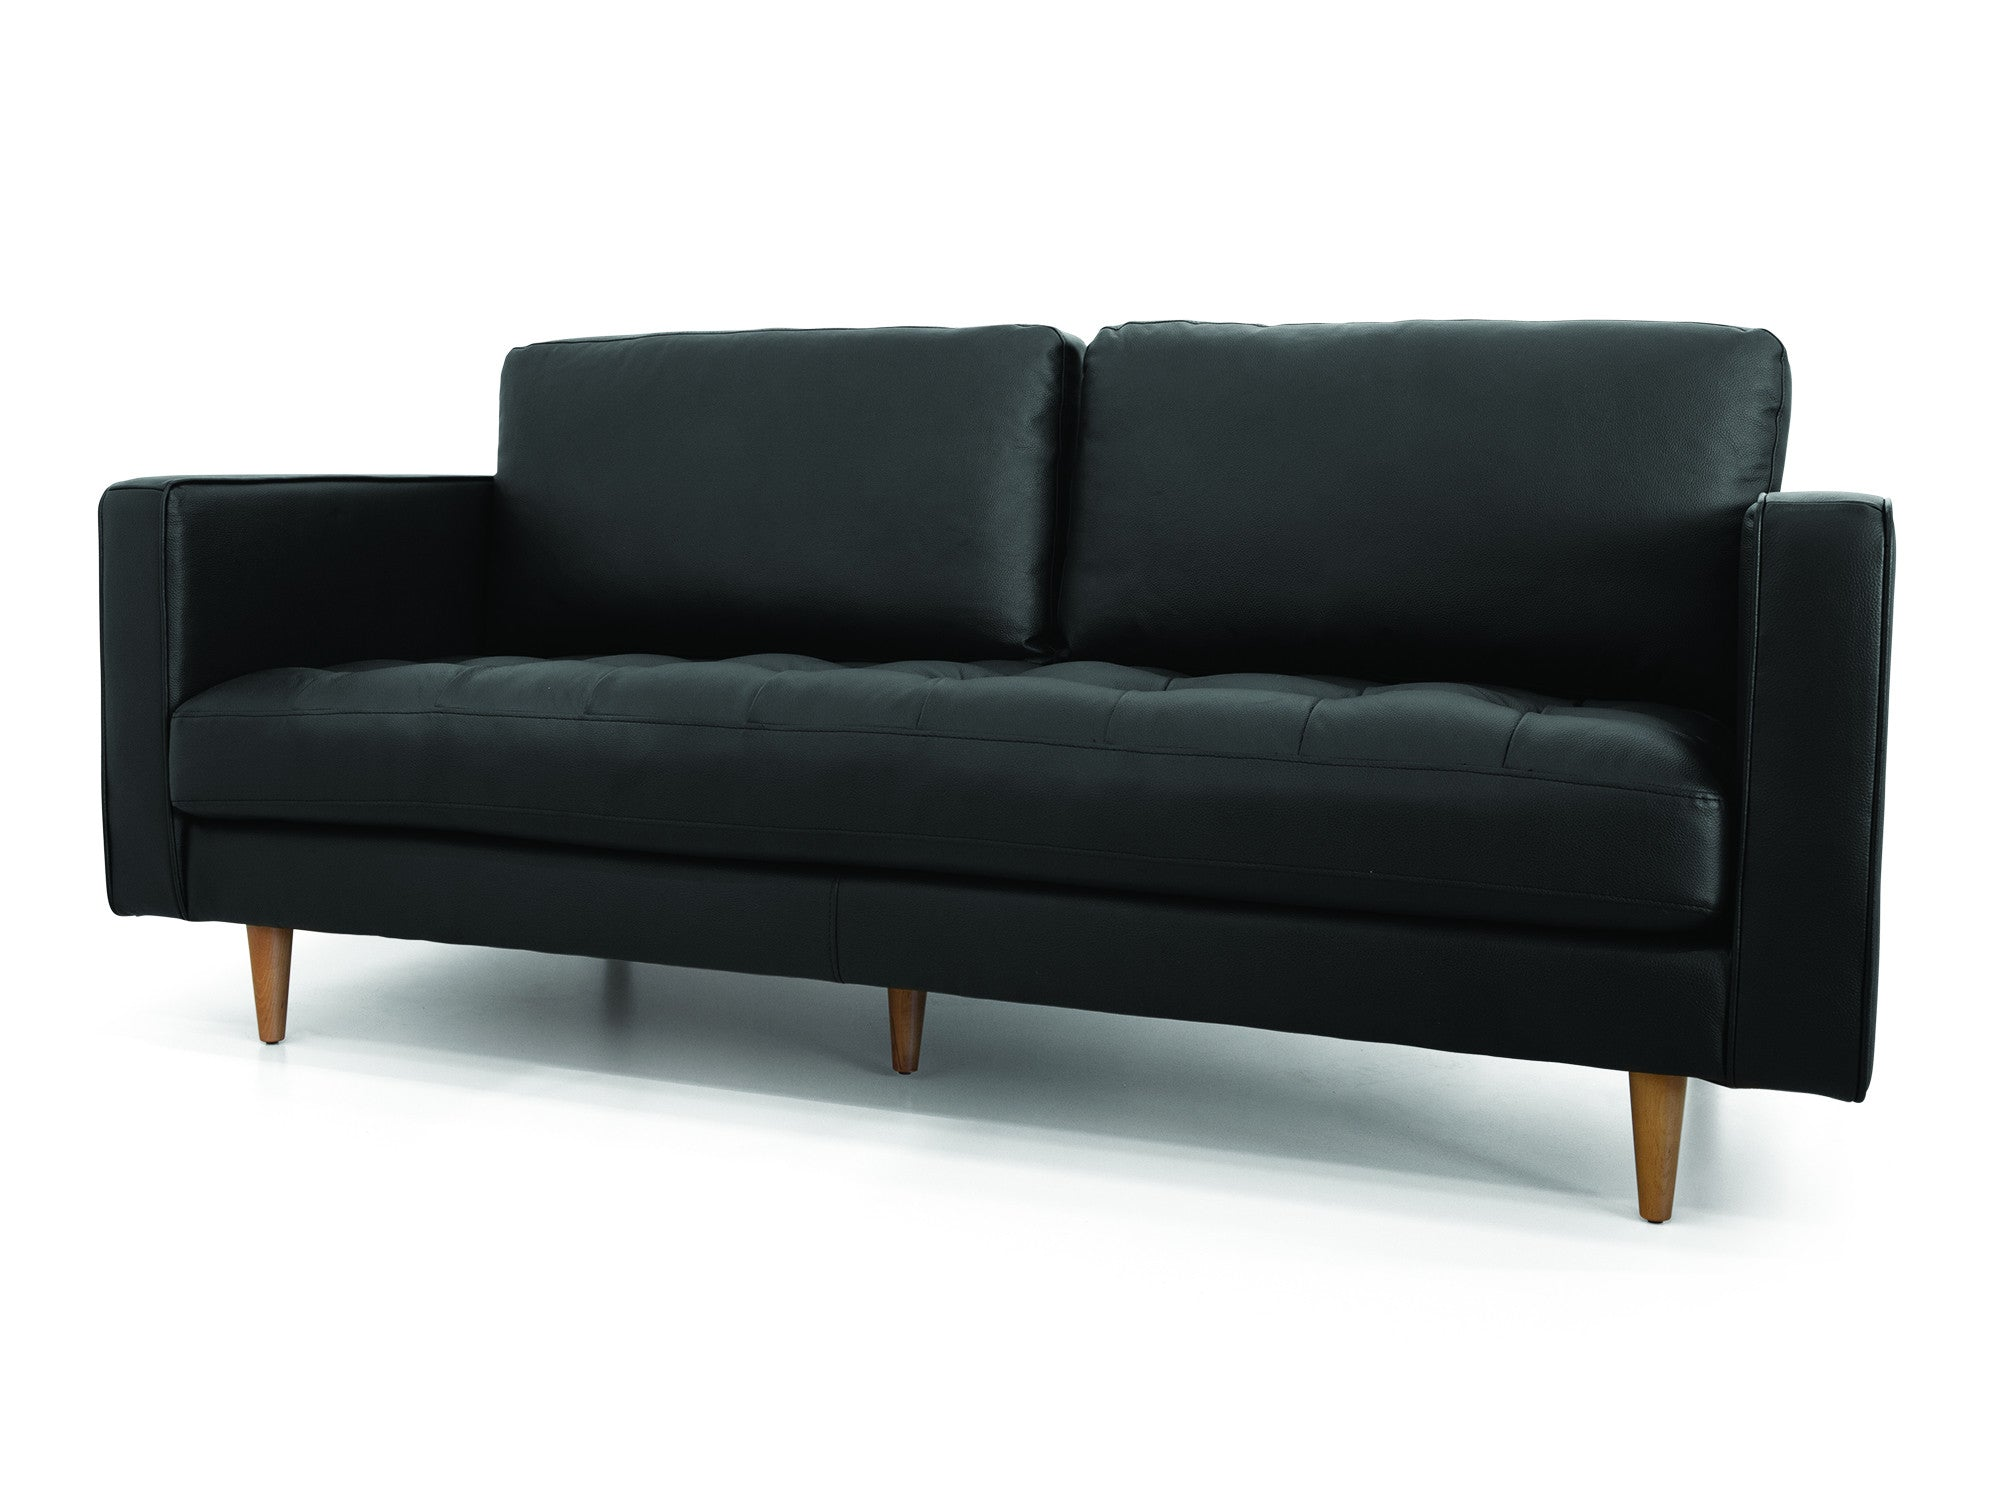 Holbox sofa black leather meubles newell furniture for Meubles newell montreal